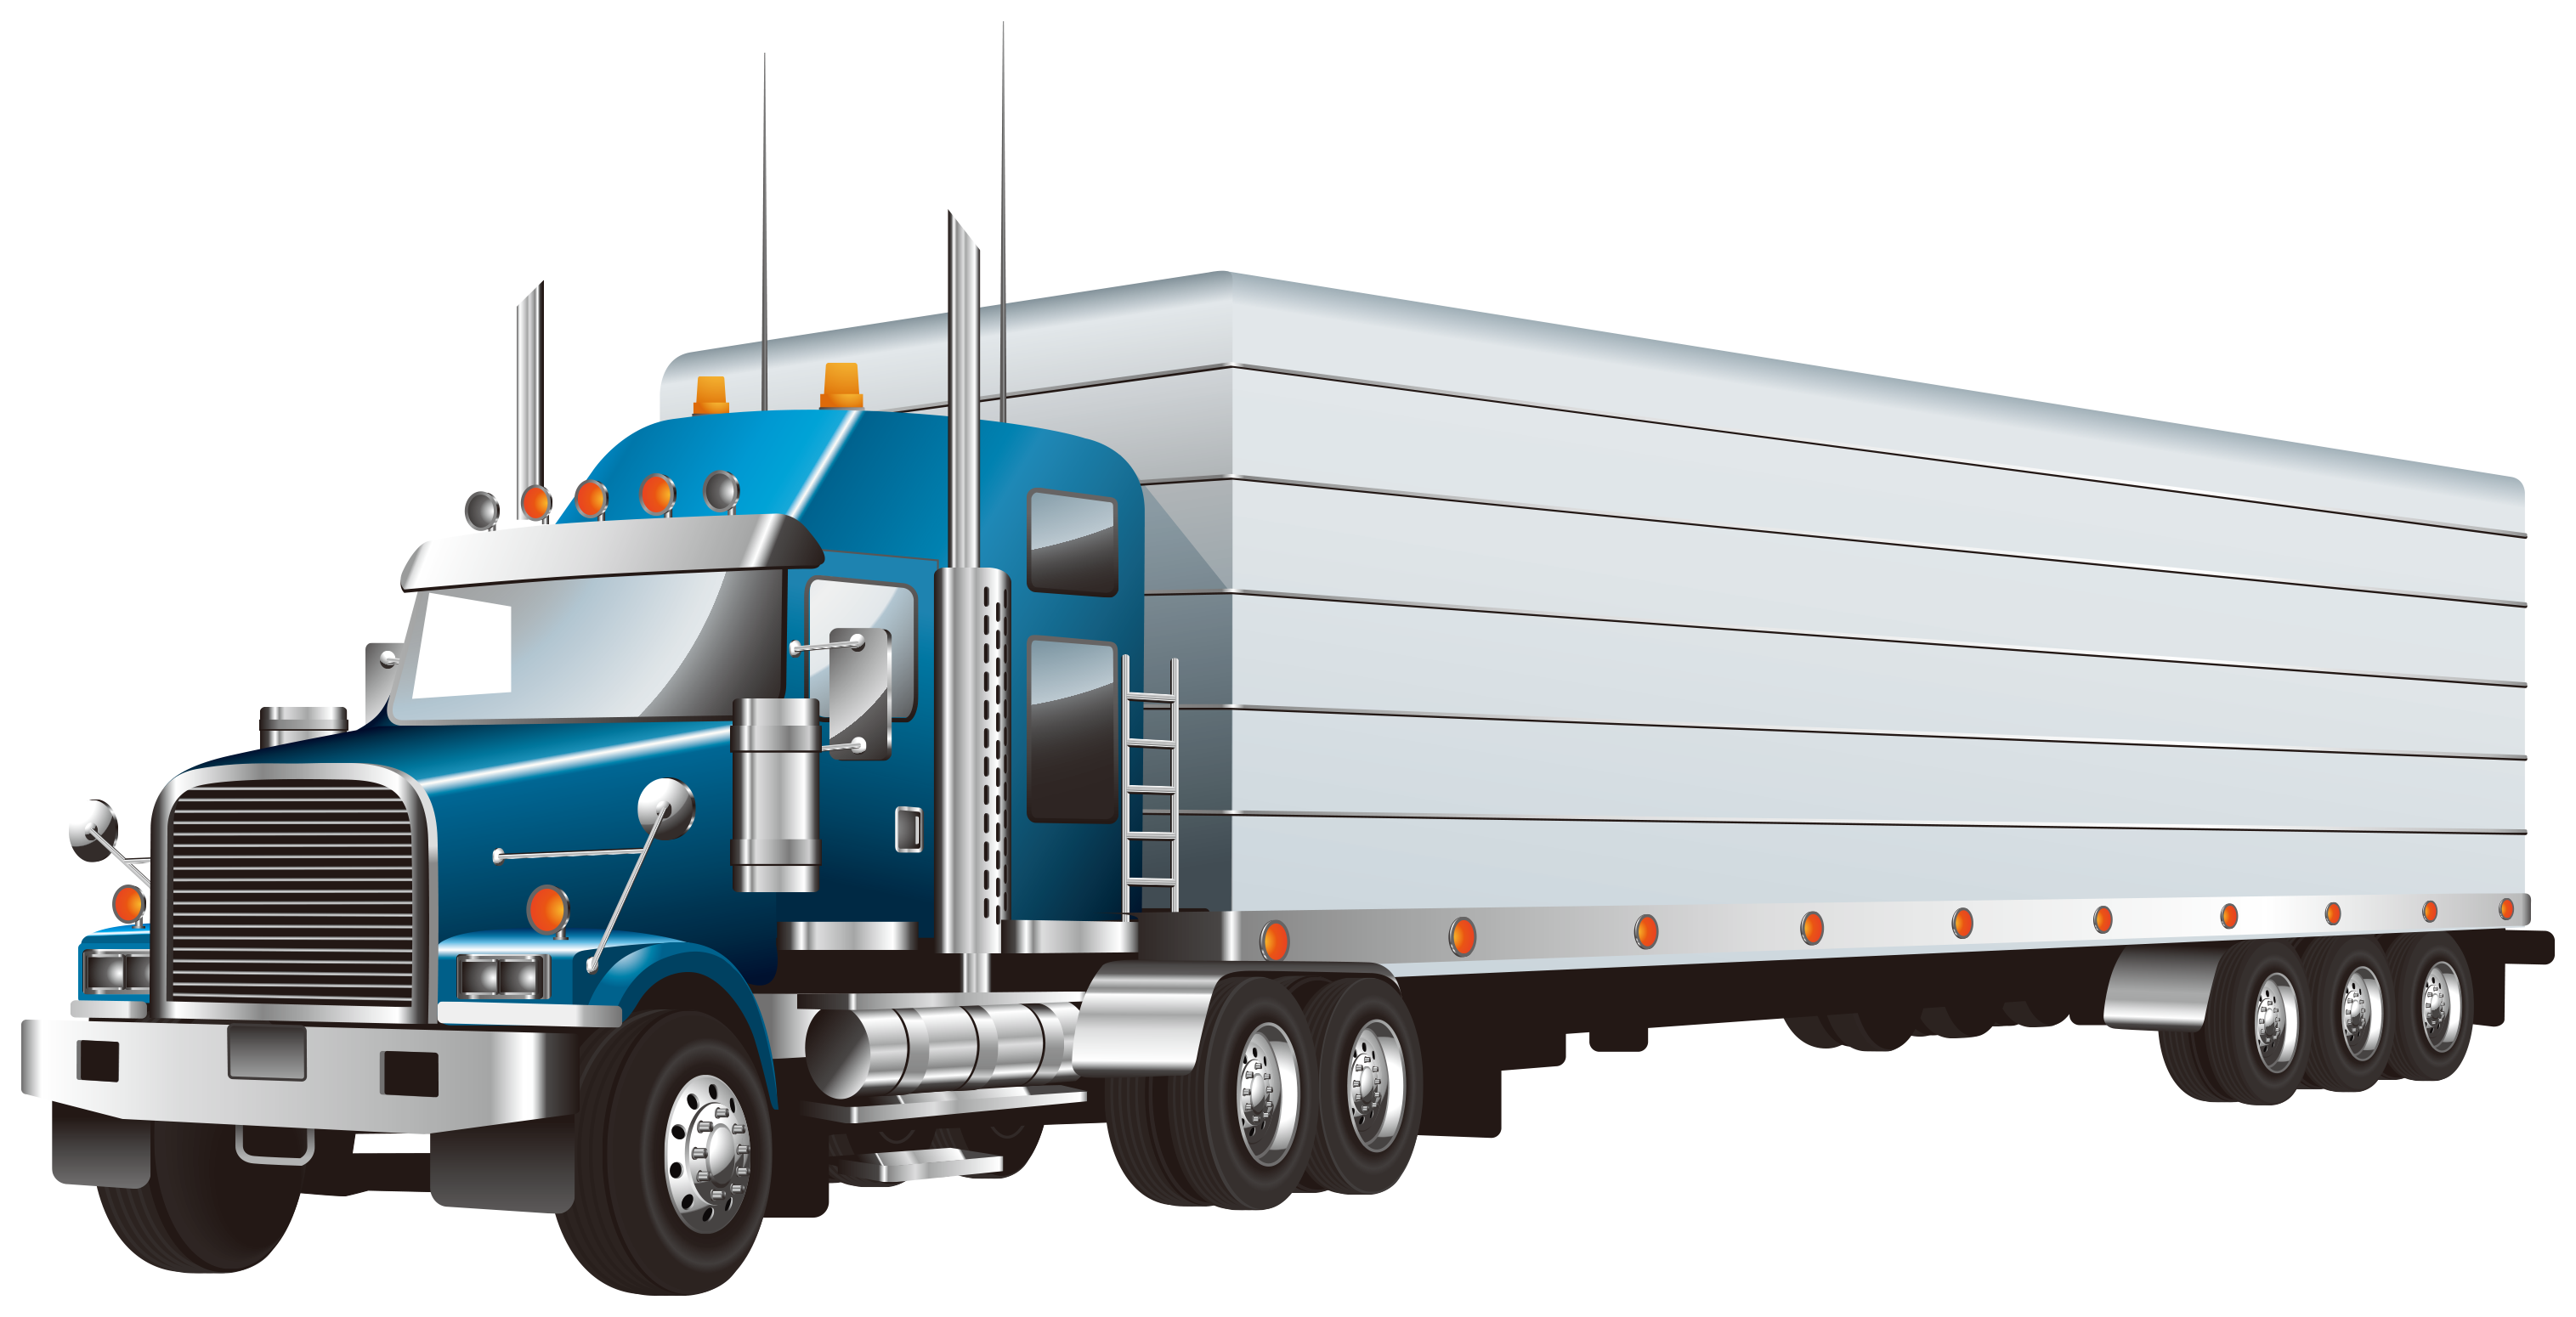 Tractor Trailer Truck Png & Free Tractor Trailer Truck.png ...